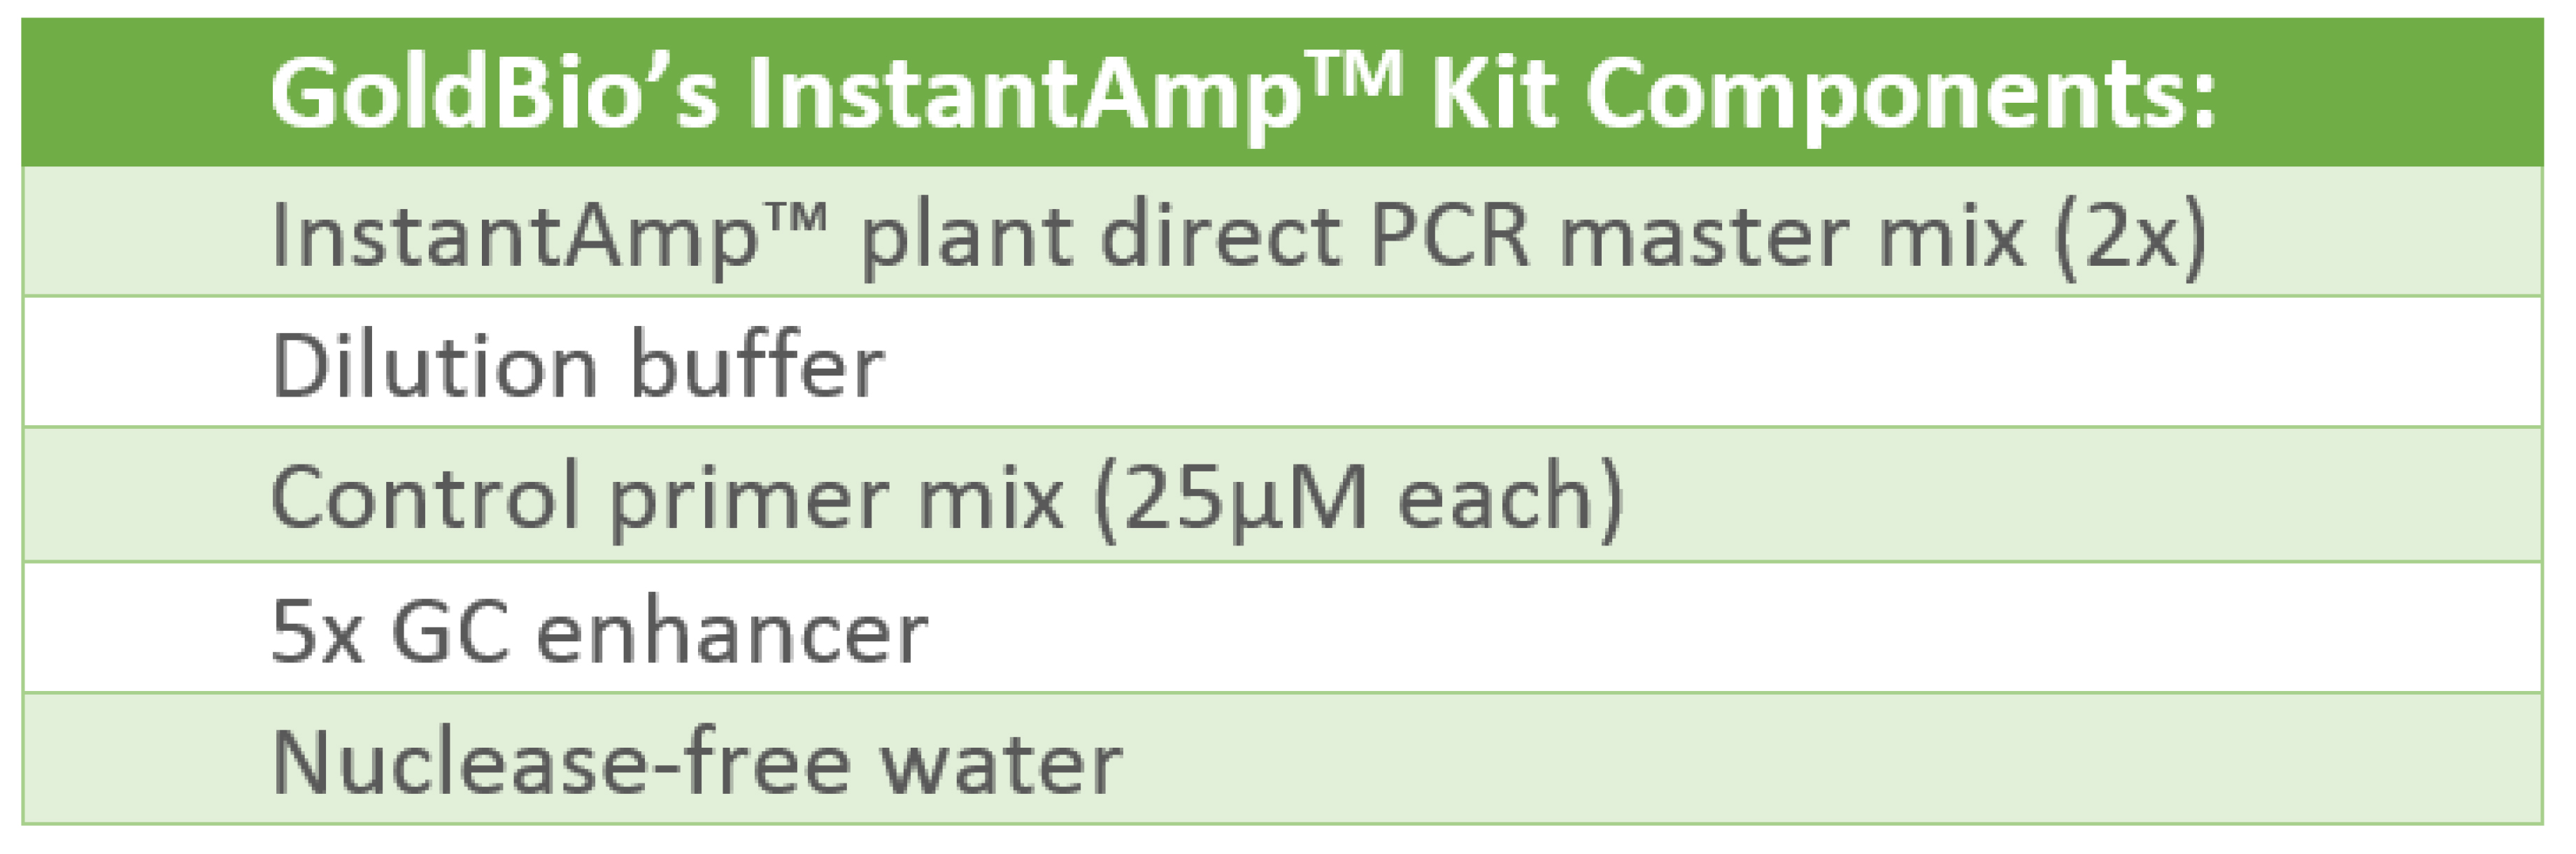 Kit Components of GoldBio's Plant Direct PCR Kit